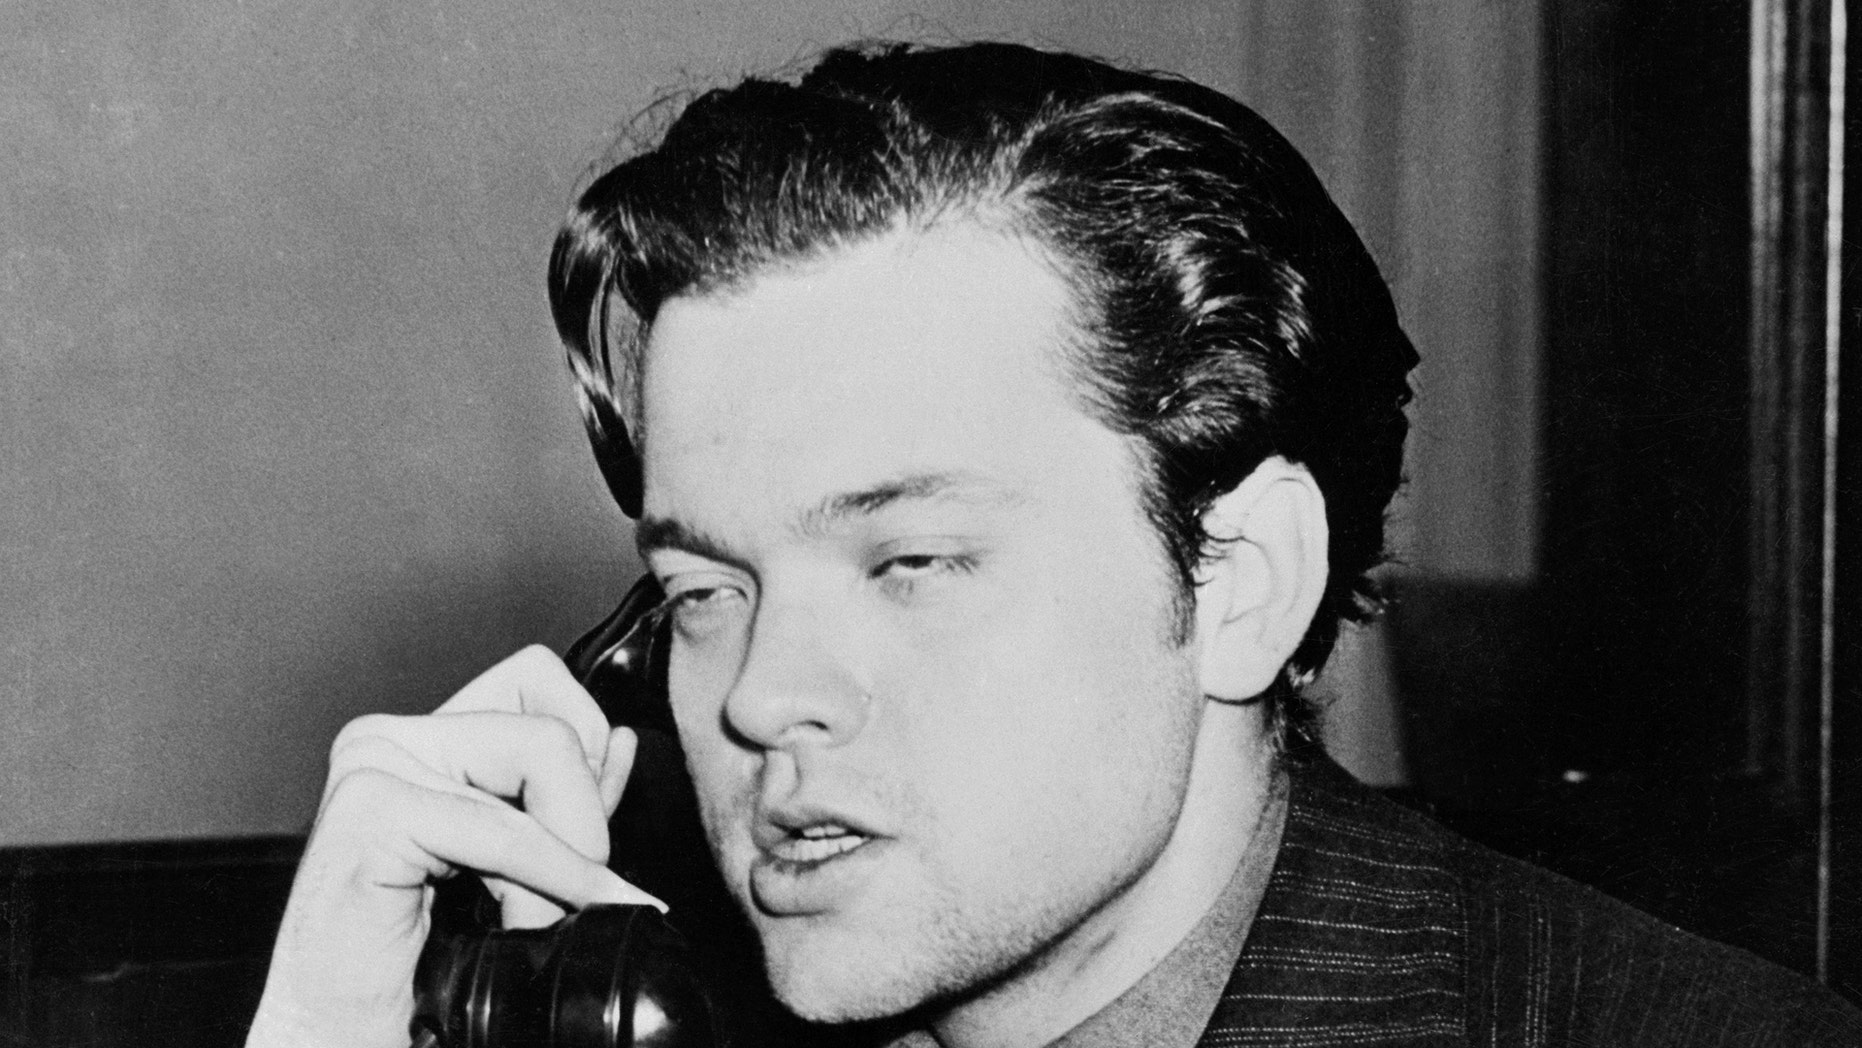 """(Original Caption) Orson Welles as he appeared after the radio broadcast War of the Worlds, a dramatic radio version of an imaginary landing of a """"Machine from Mars,"""" which causes panic among listeners throughout the United States, October 30. Orson Welles (shown above) adopted the original story by H.G. Wells for the Panic program and also played a principal role."""